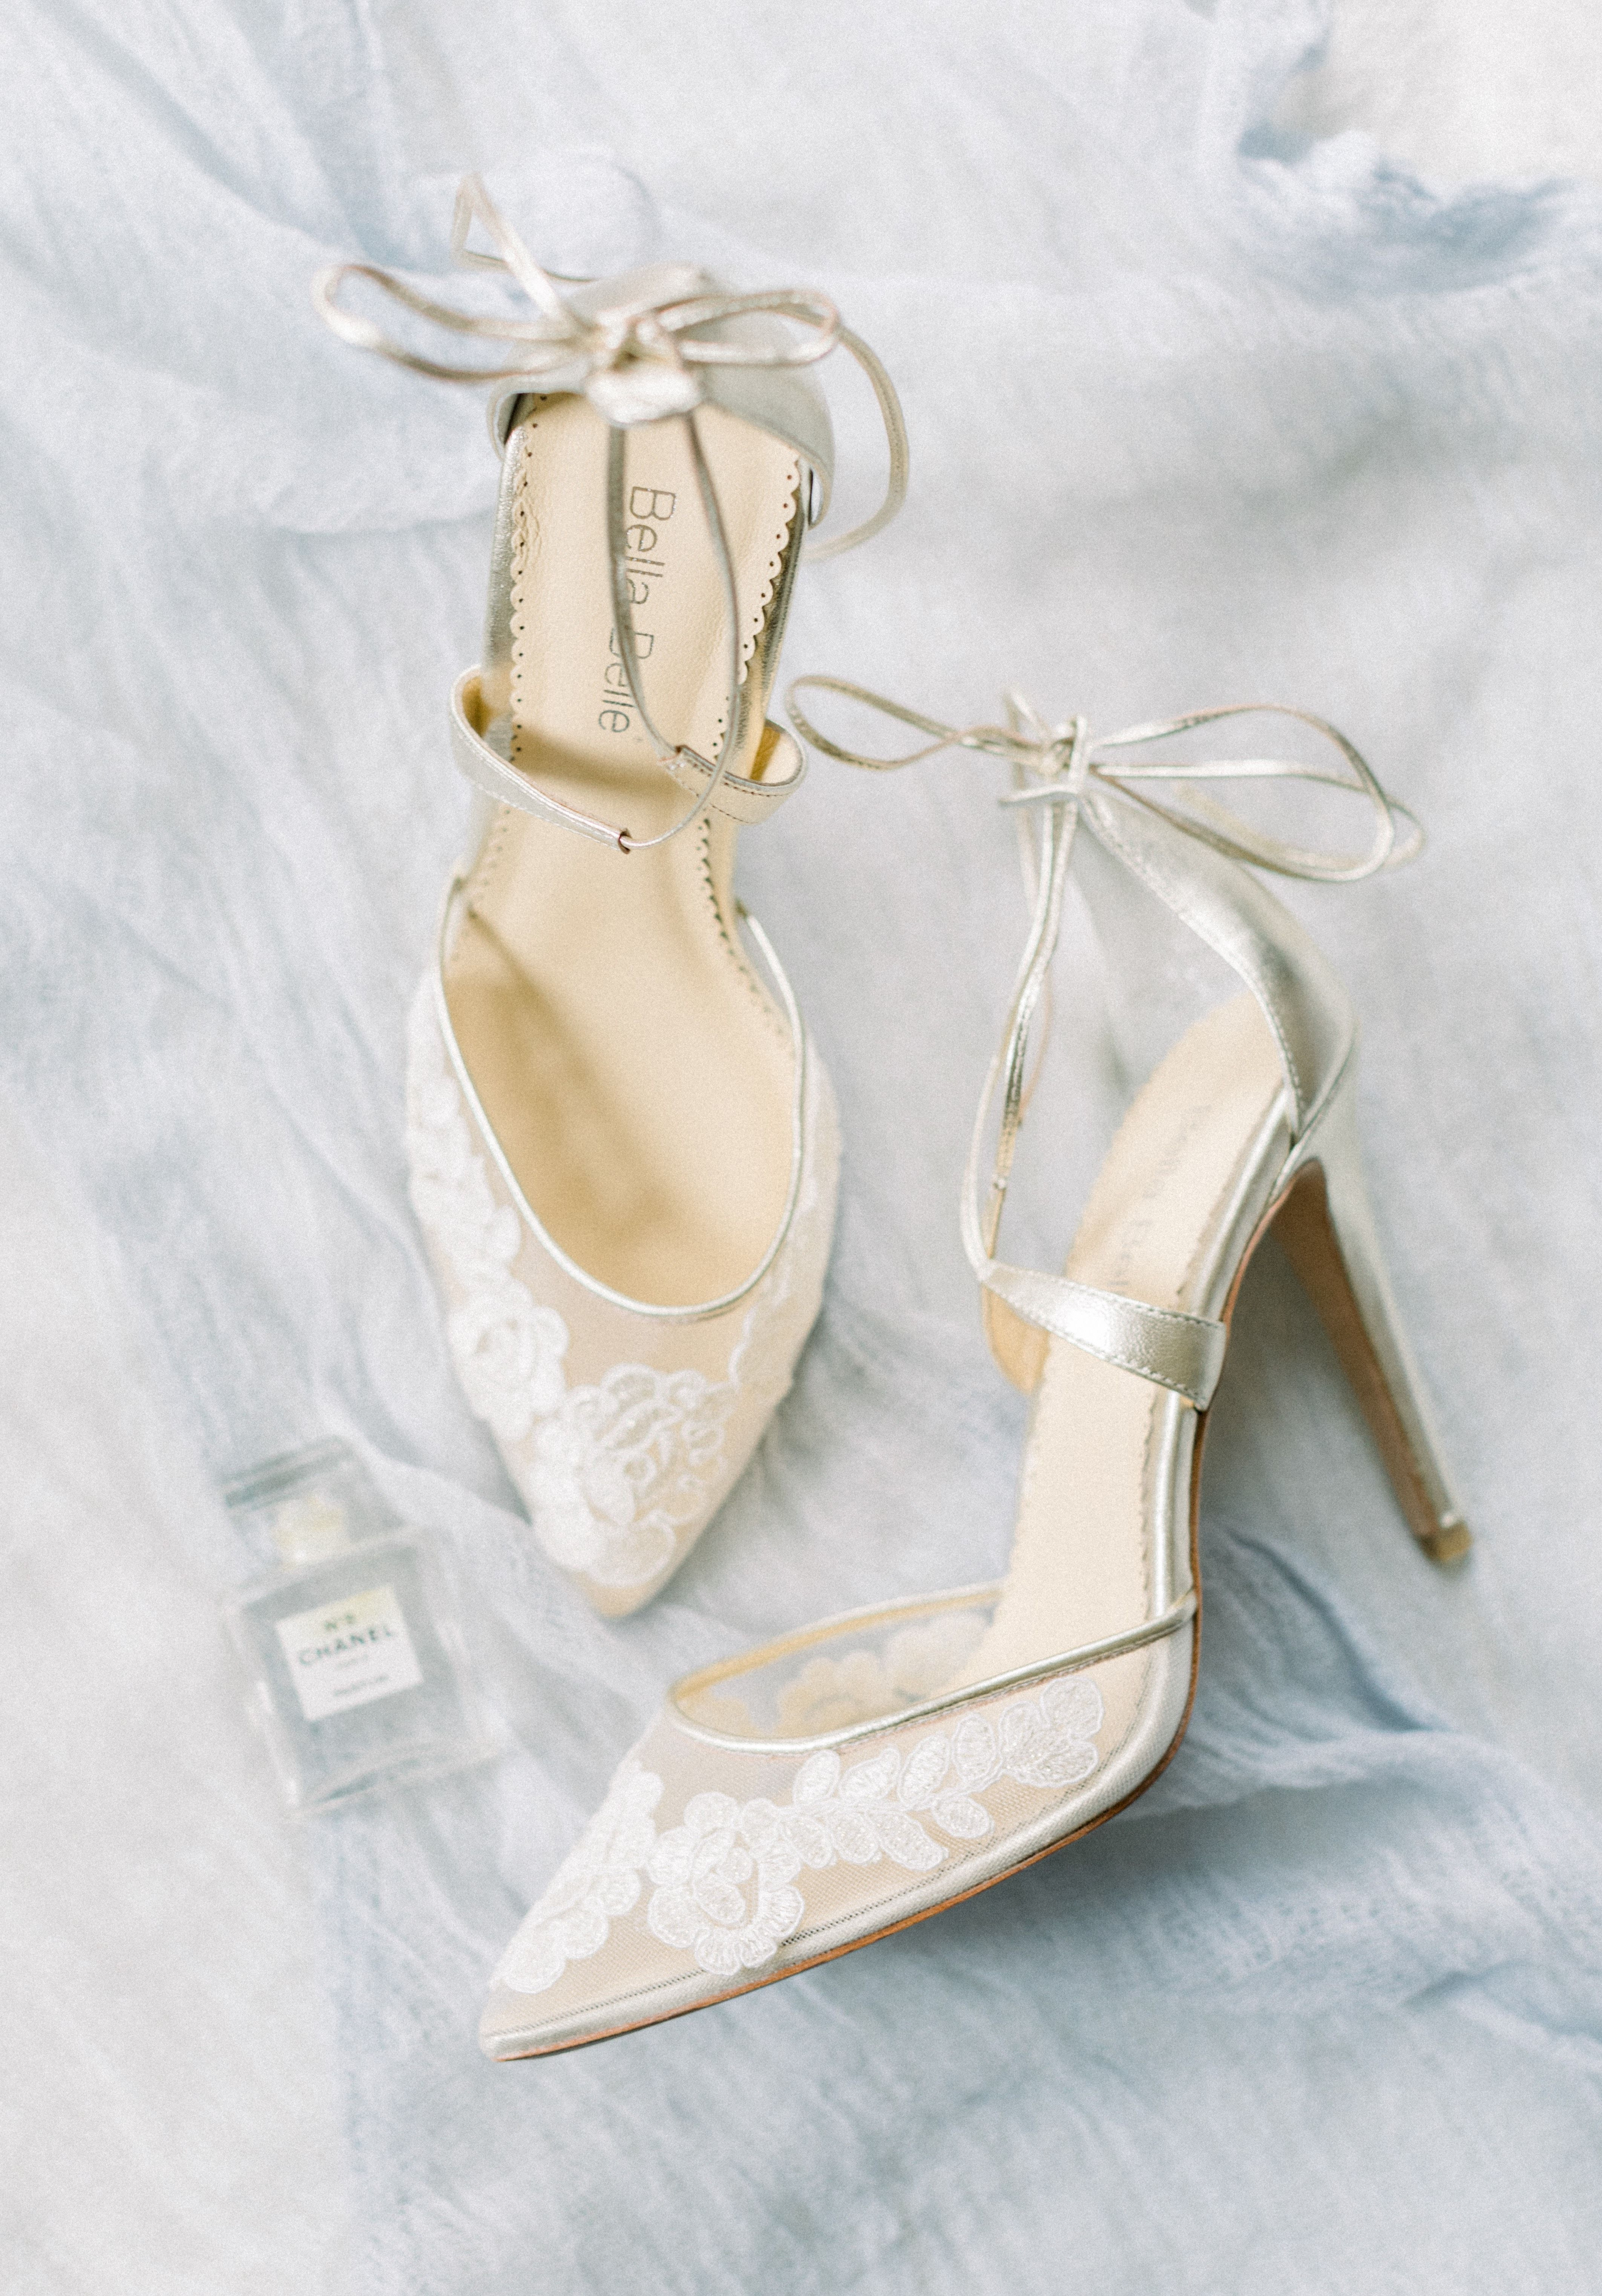 Gold Lace Wedding Evening Shoes Wedding Shoes Gold Heels Wedding Shoes Heels Lace Heels